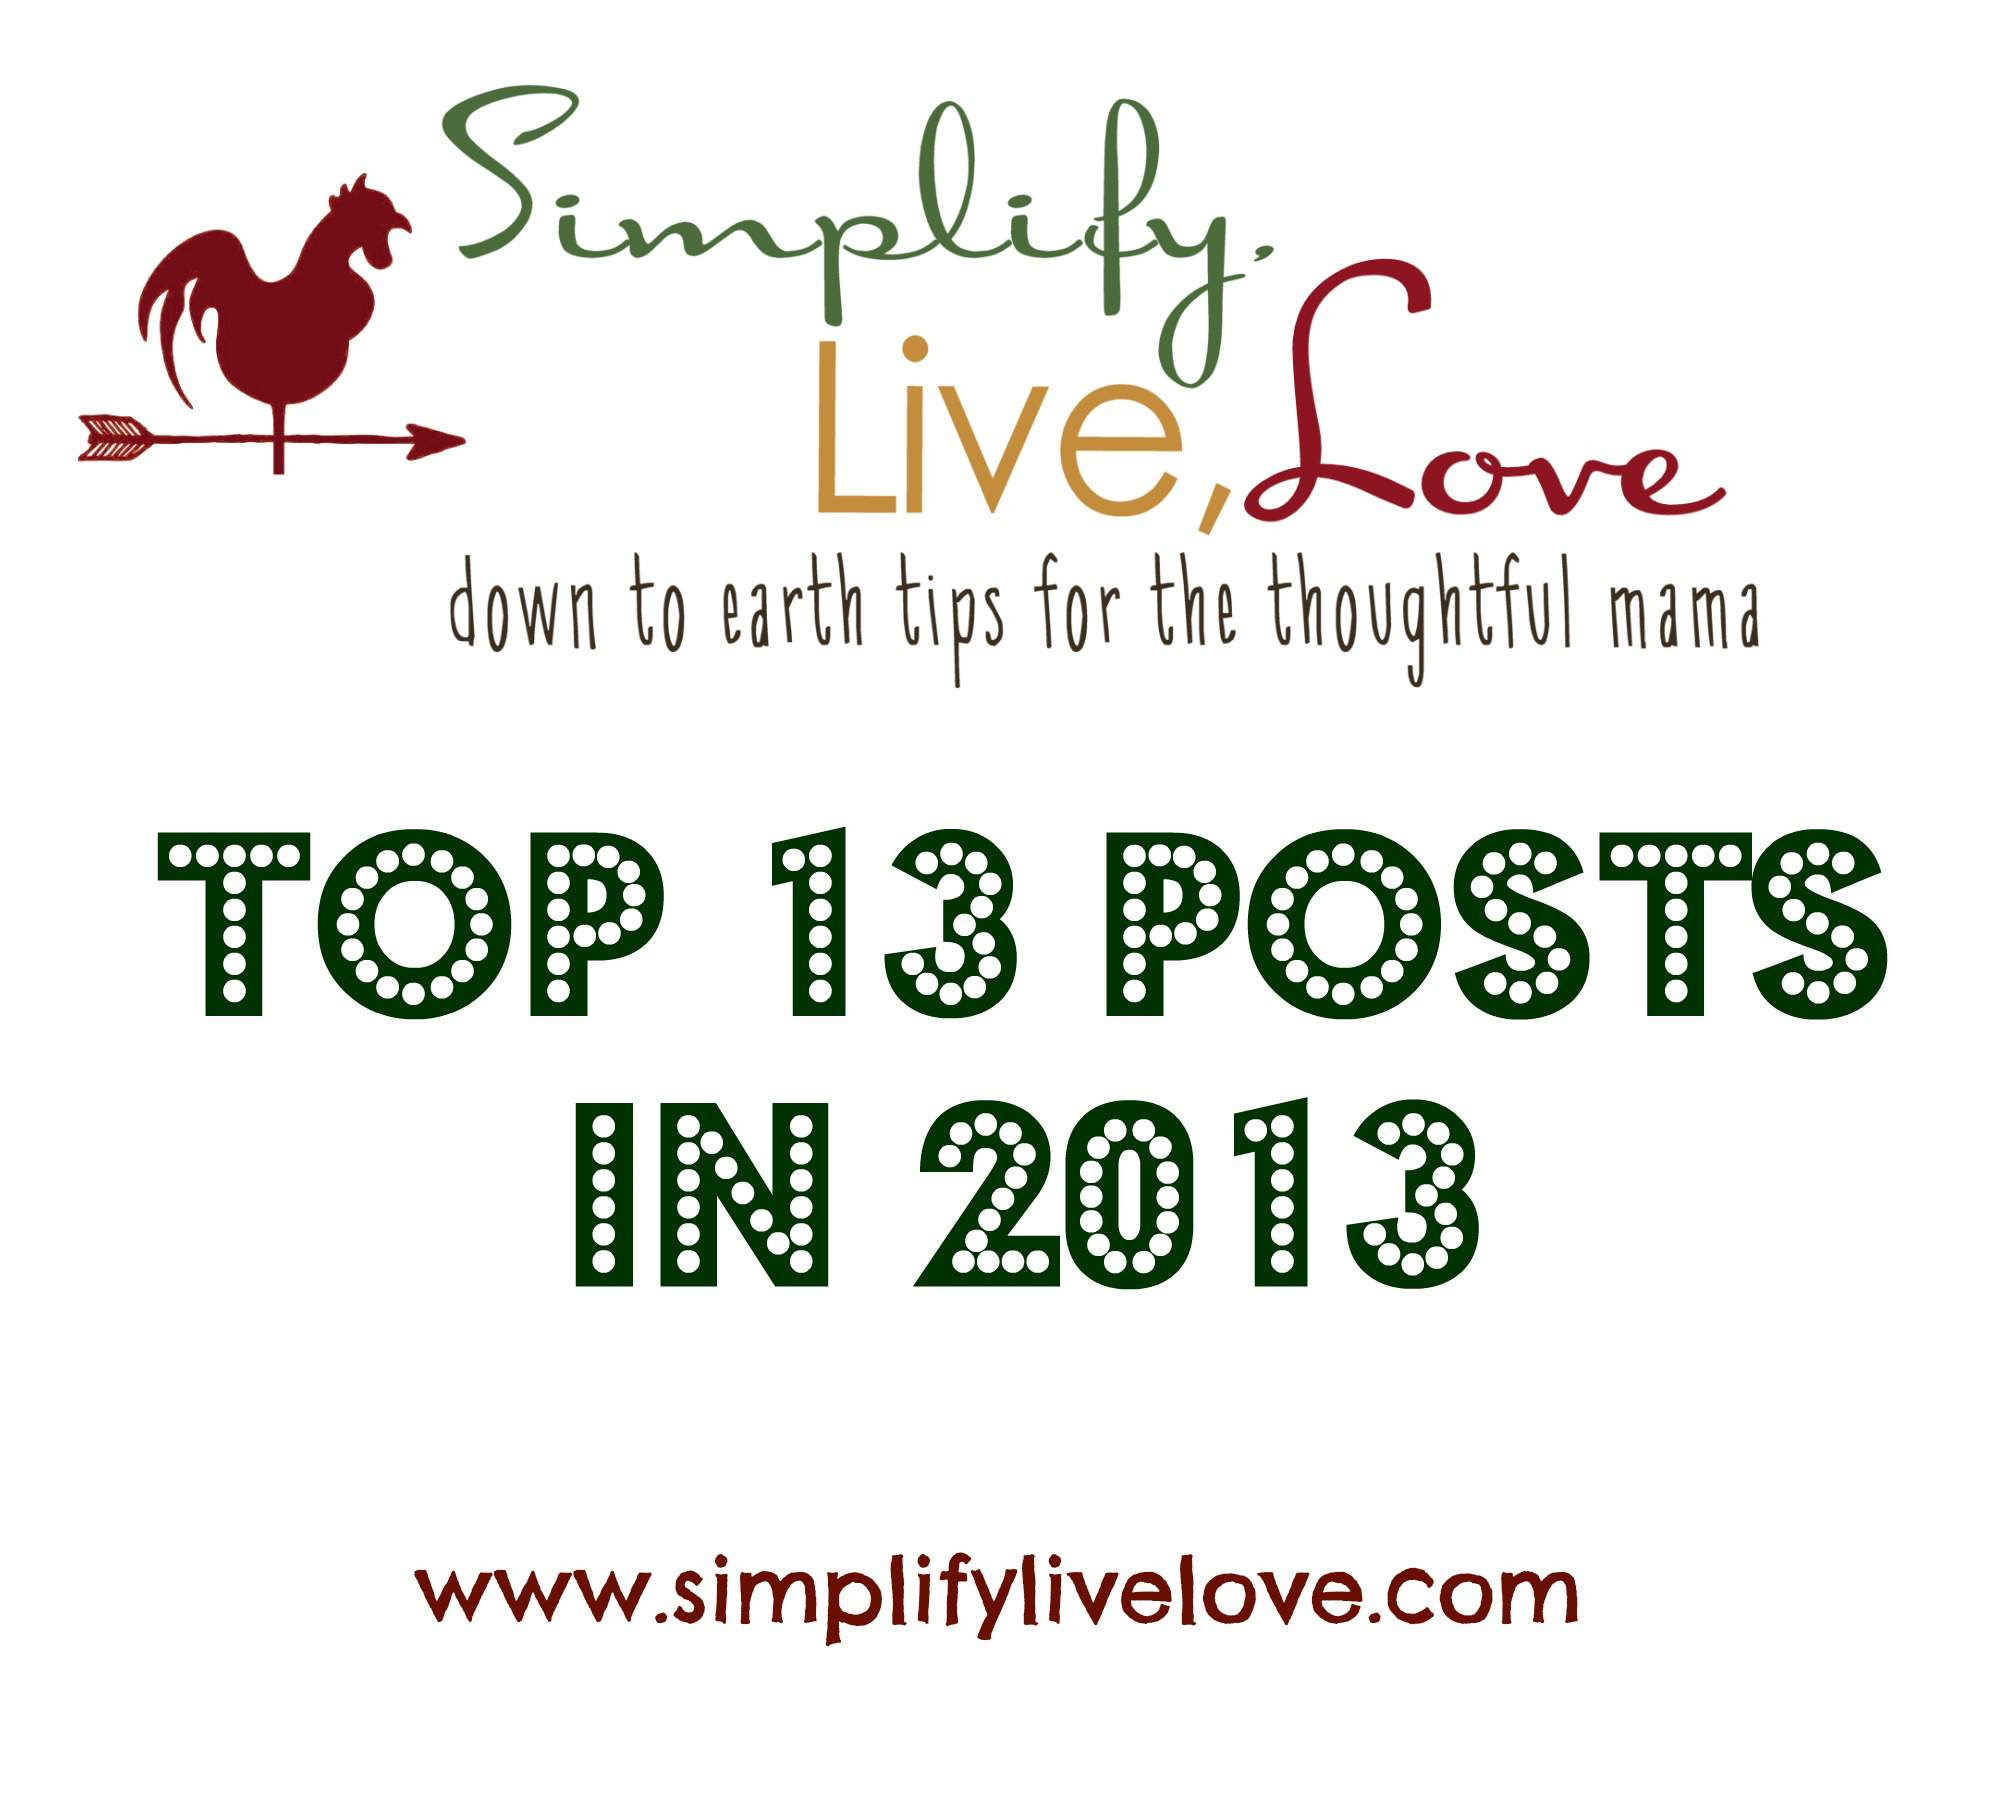 top 13 posts in 2013